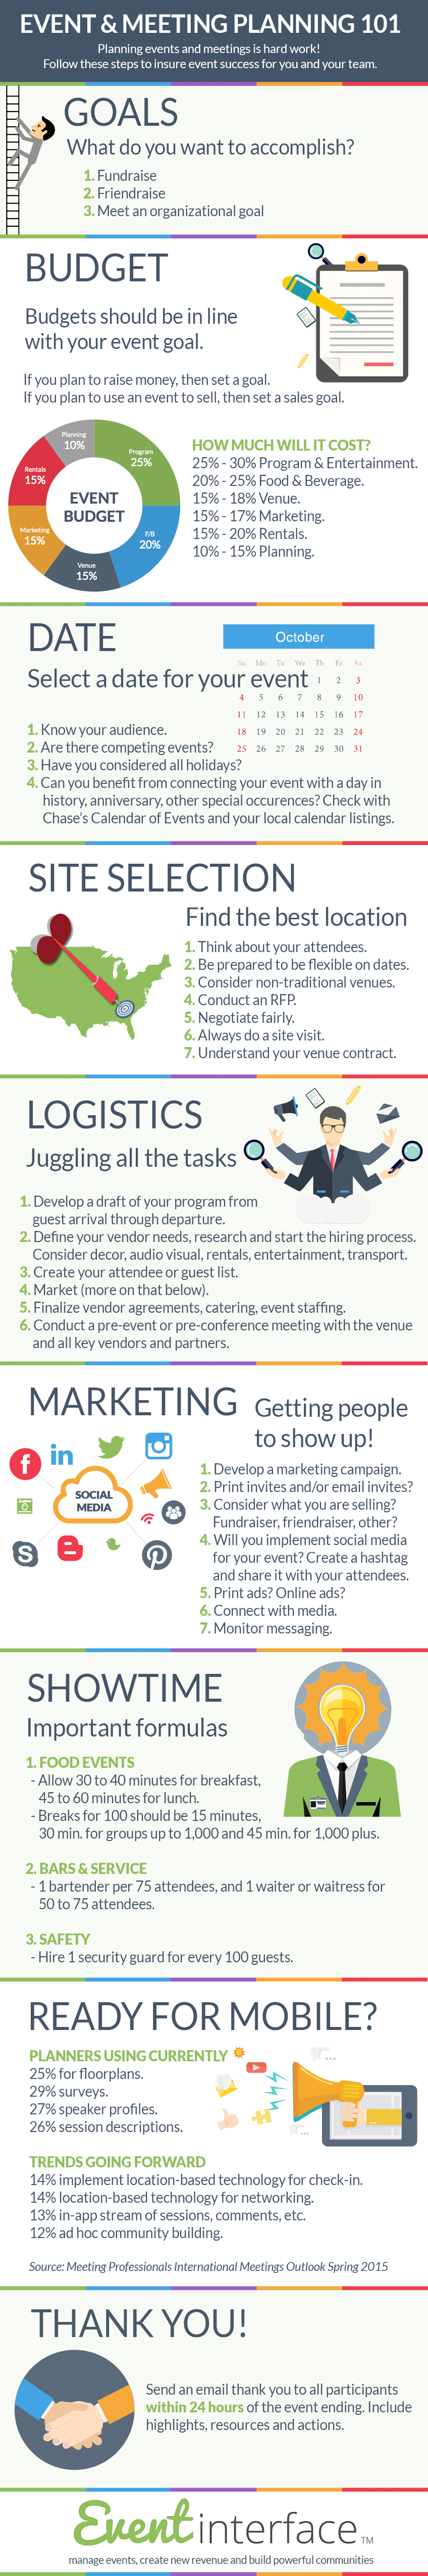 Event Planning infographic by Eventinterface. Planning events and meetings. #eventplanning #eventprofs #meetingprofs #eventtech #meetingplanning #infographic #Eventinterface